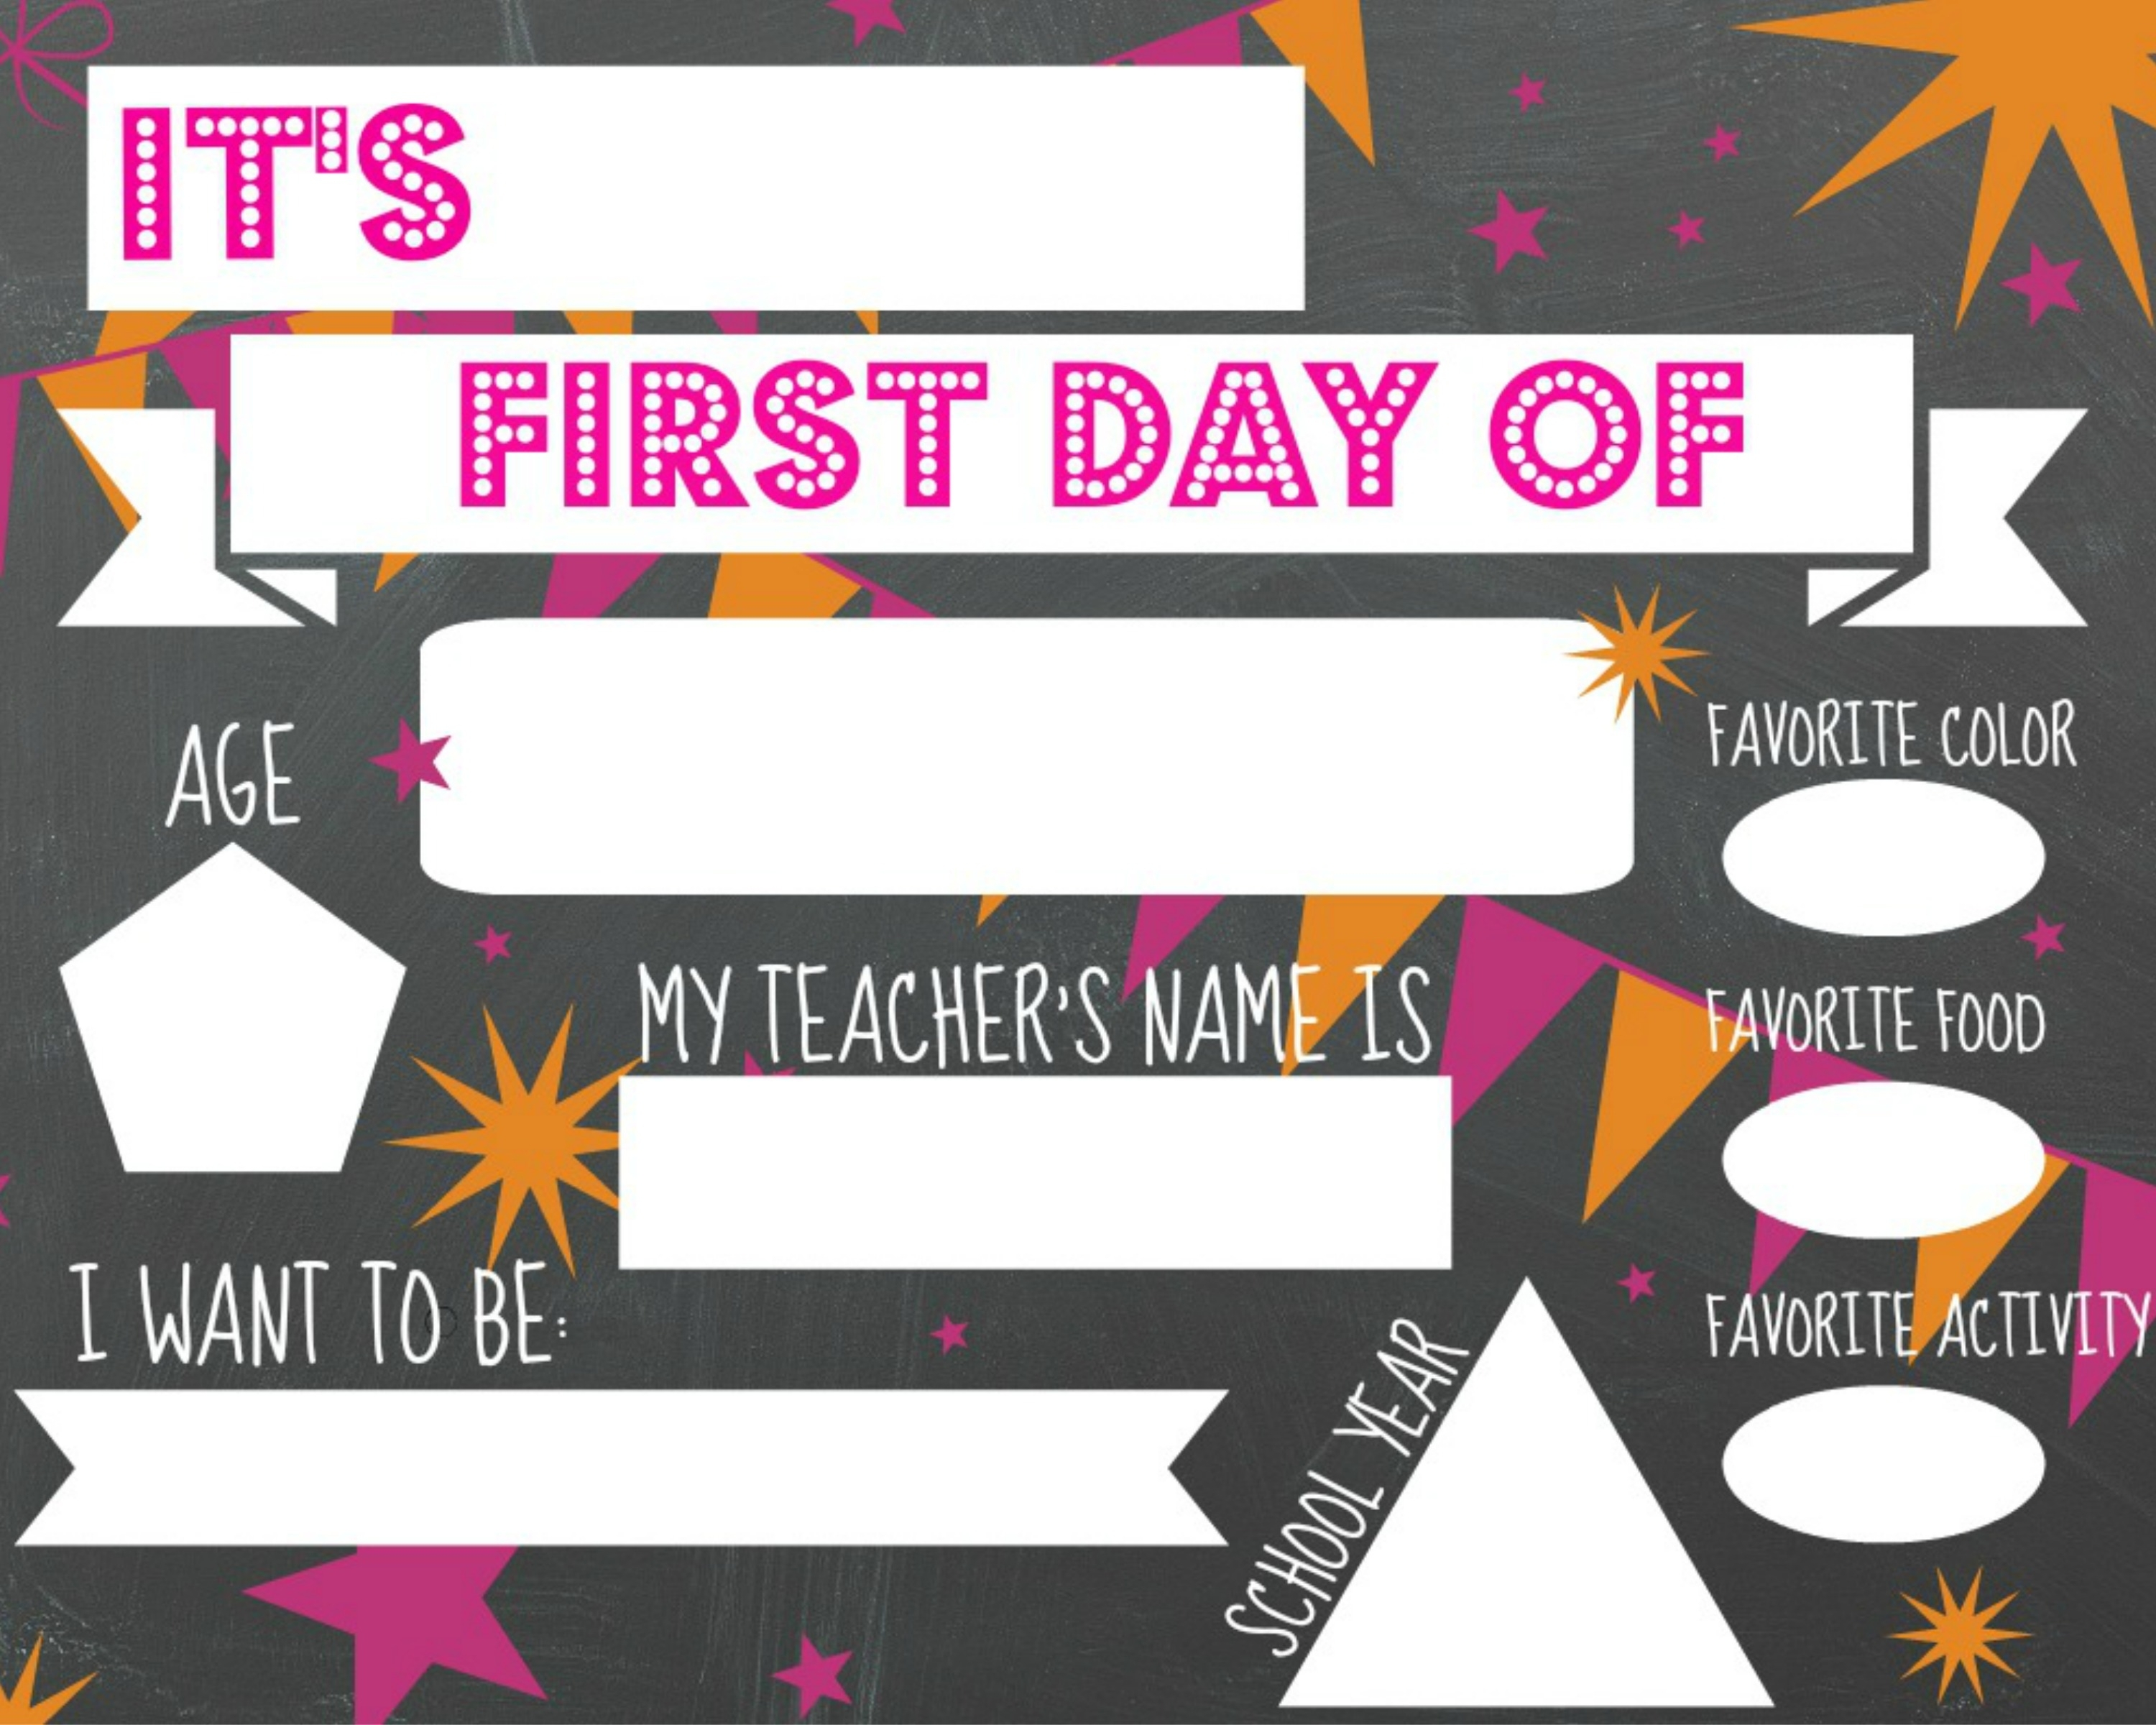 photo relating to First Day of School Sign Printable identified as No cost PRINTABLE 1st Working day OF College or university Indications Sincerely Saay